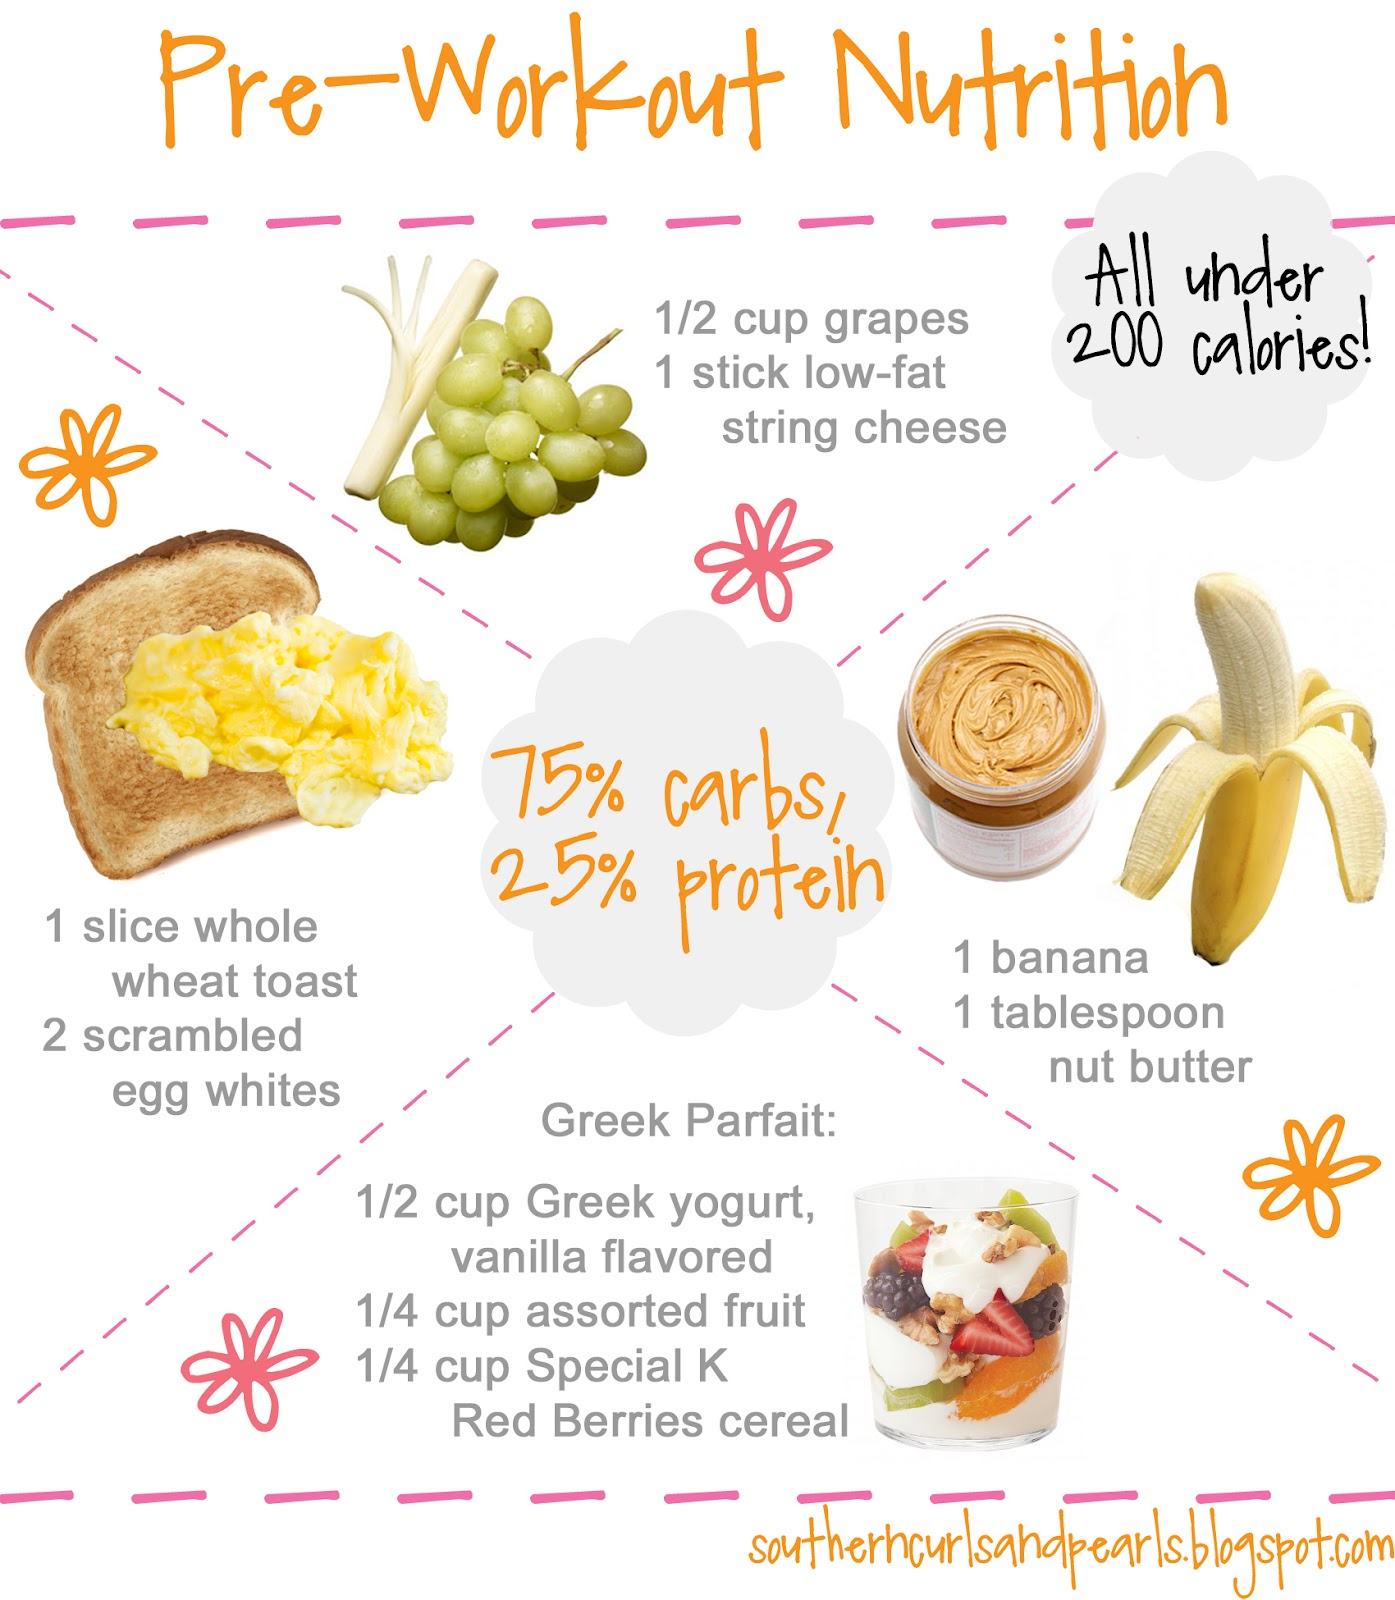 Southern Curls & Pearls: Workout Nutrition